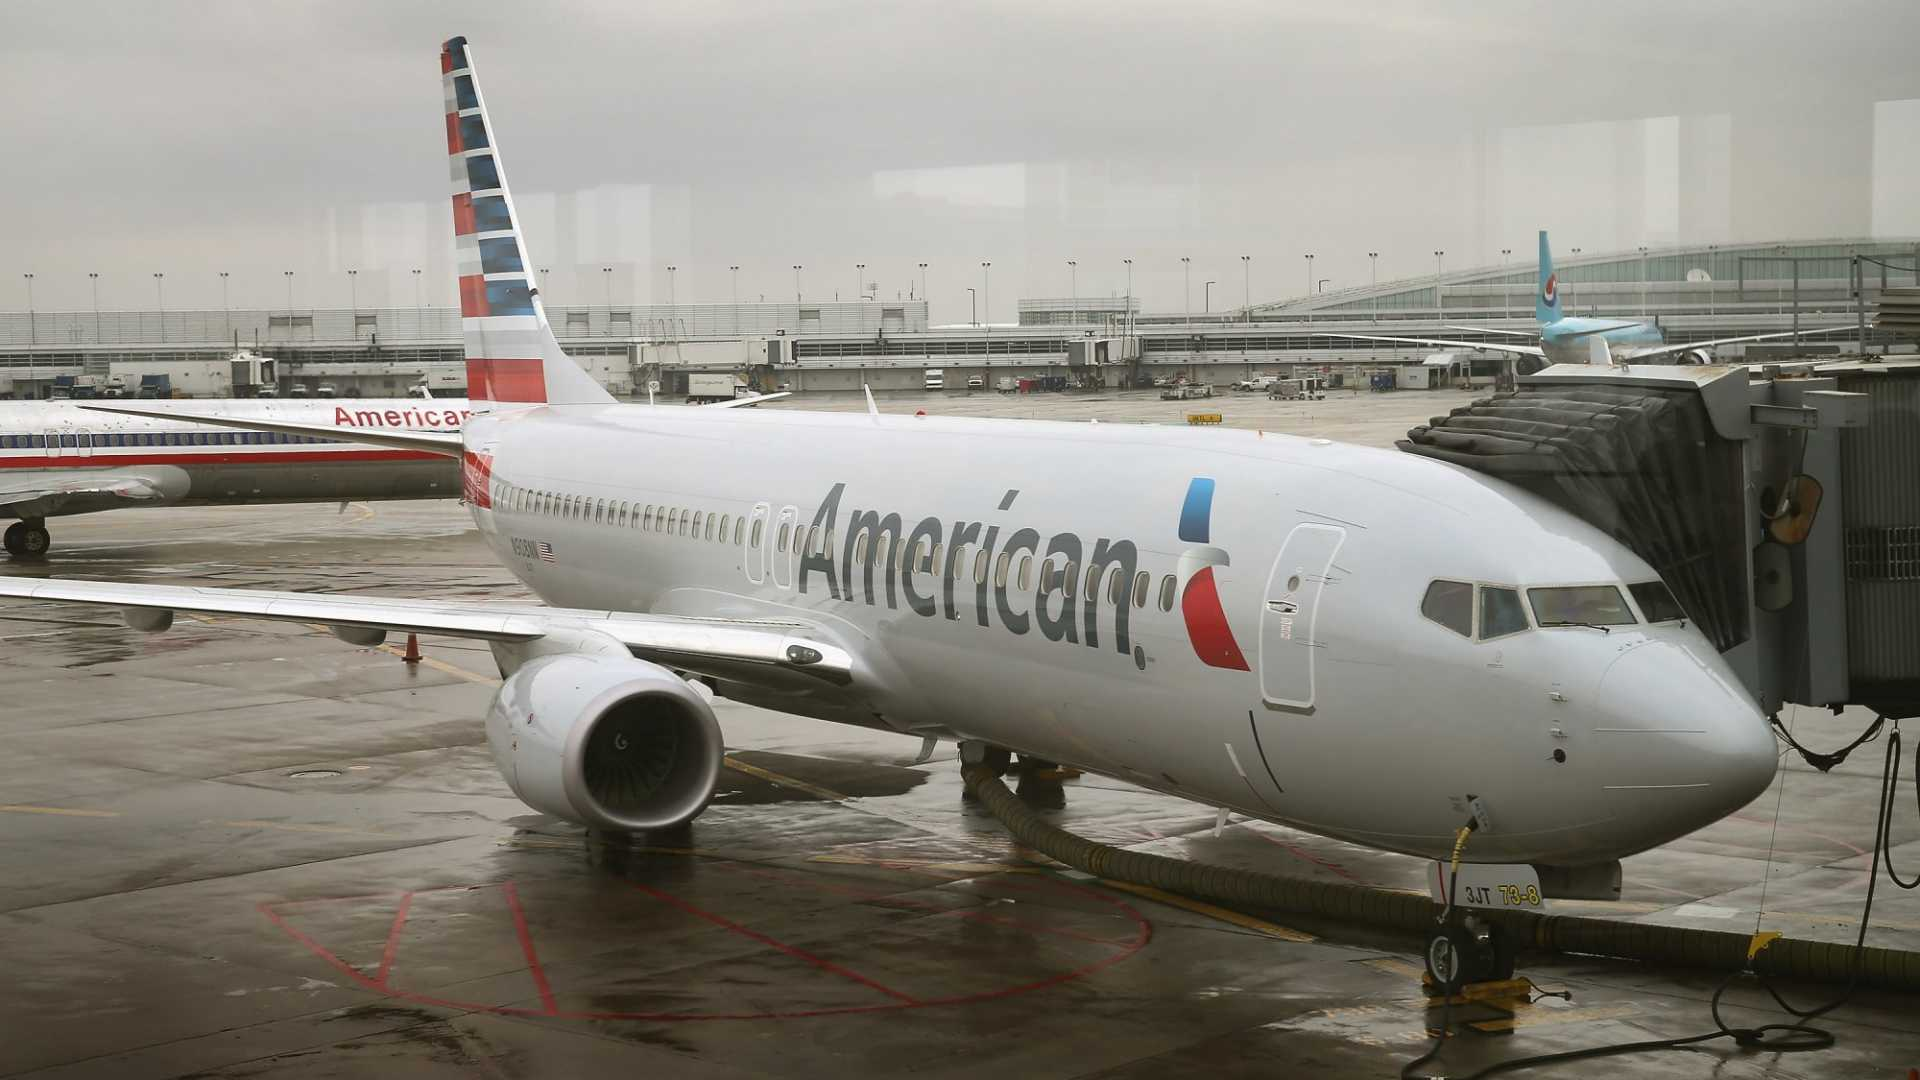 These American Airlines Pilots and Flight Attendants Sued Their Own Airline. Here's the 1 Saddest Thing About It